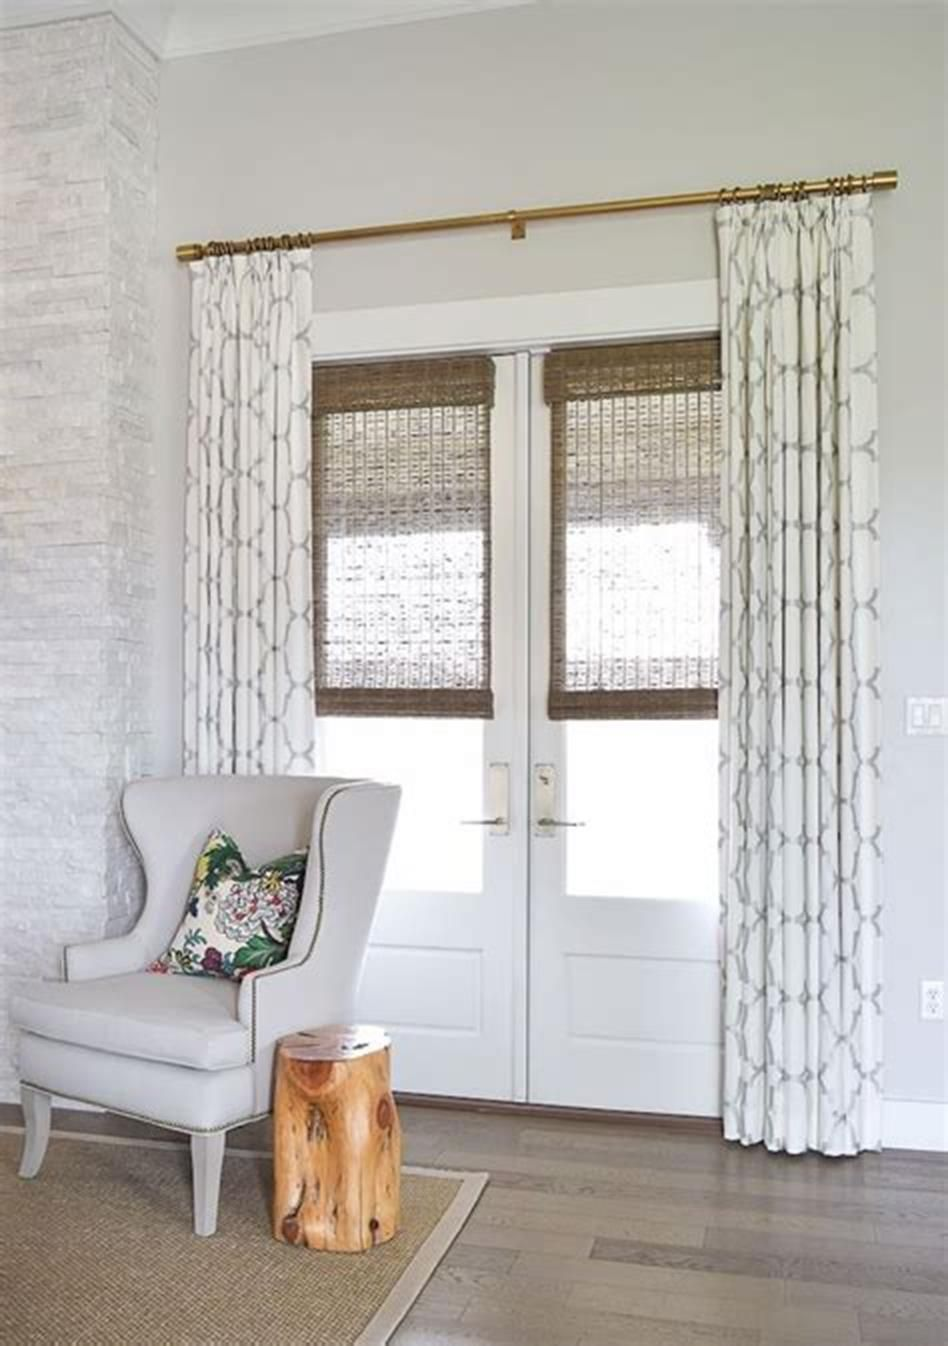 21 Creative Curtains And Window Coverings Ideas 36 Mo